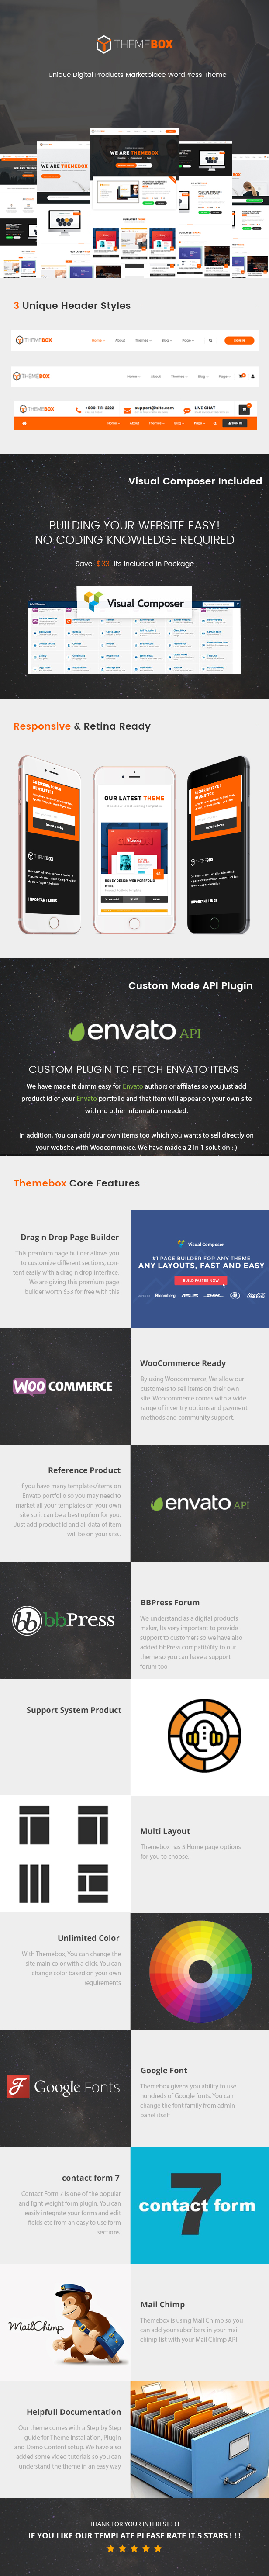 Themebox - Digital Products Ecommerce WordPress Theme - 2